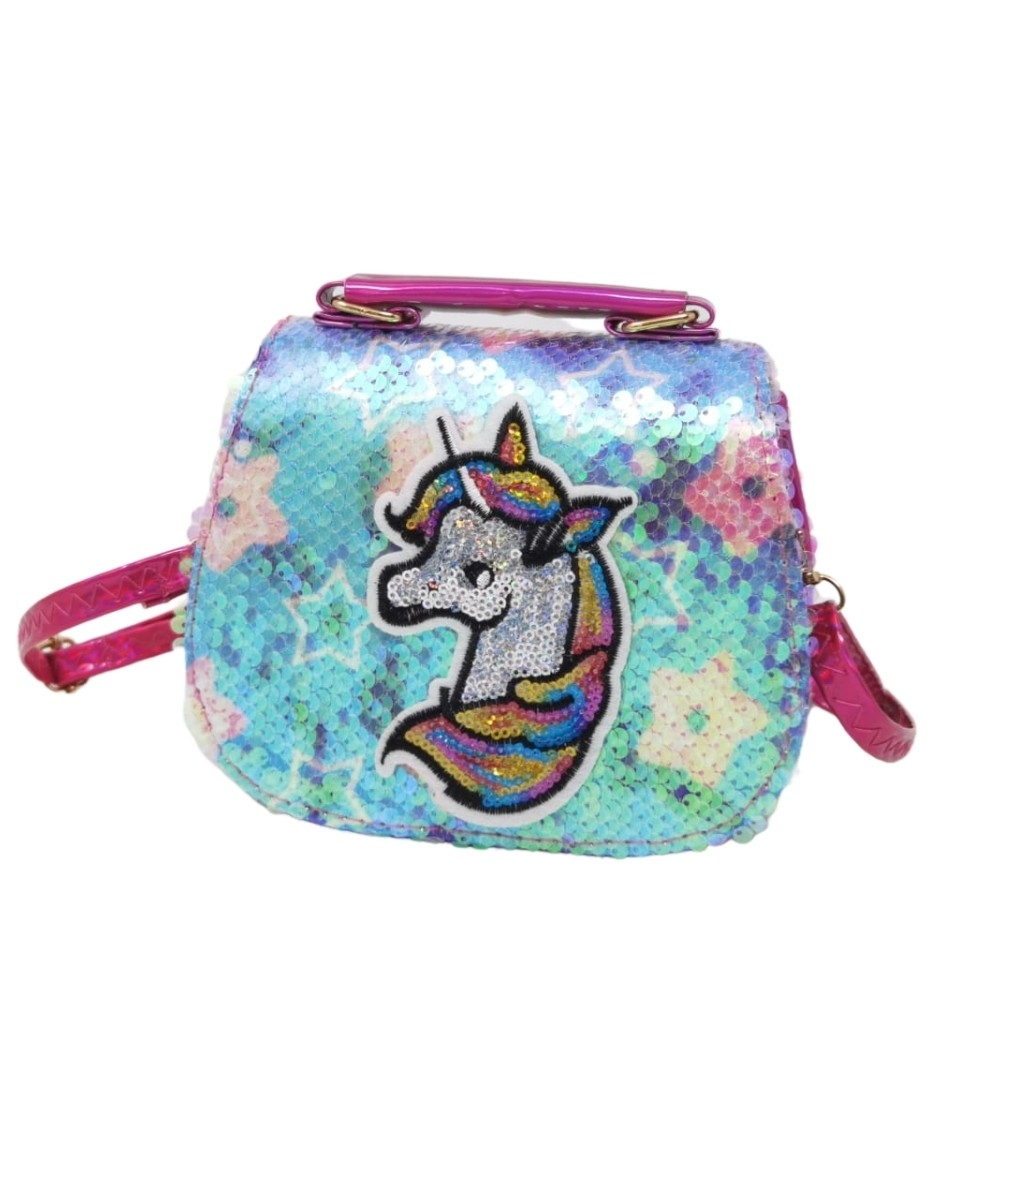 UNICORN BAG - SEQUINS